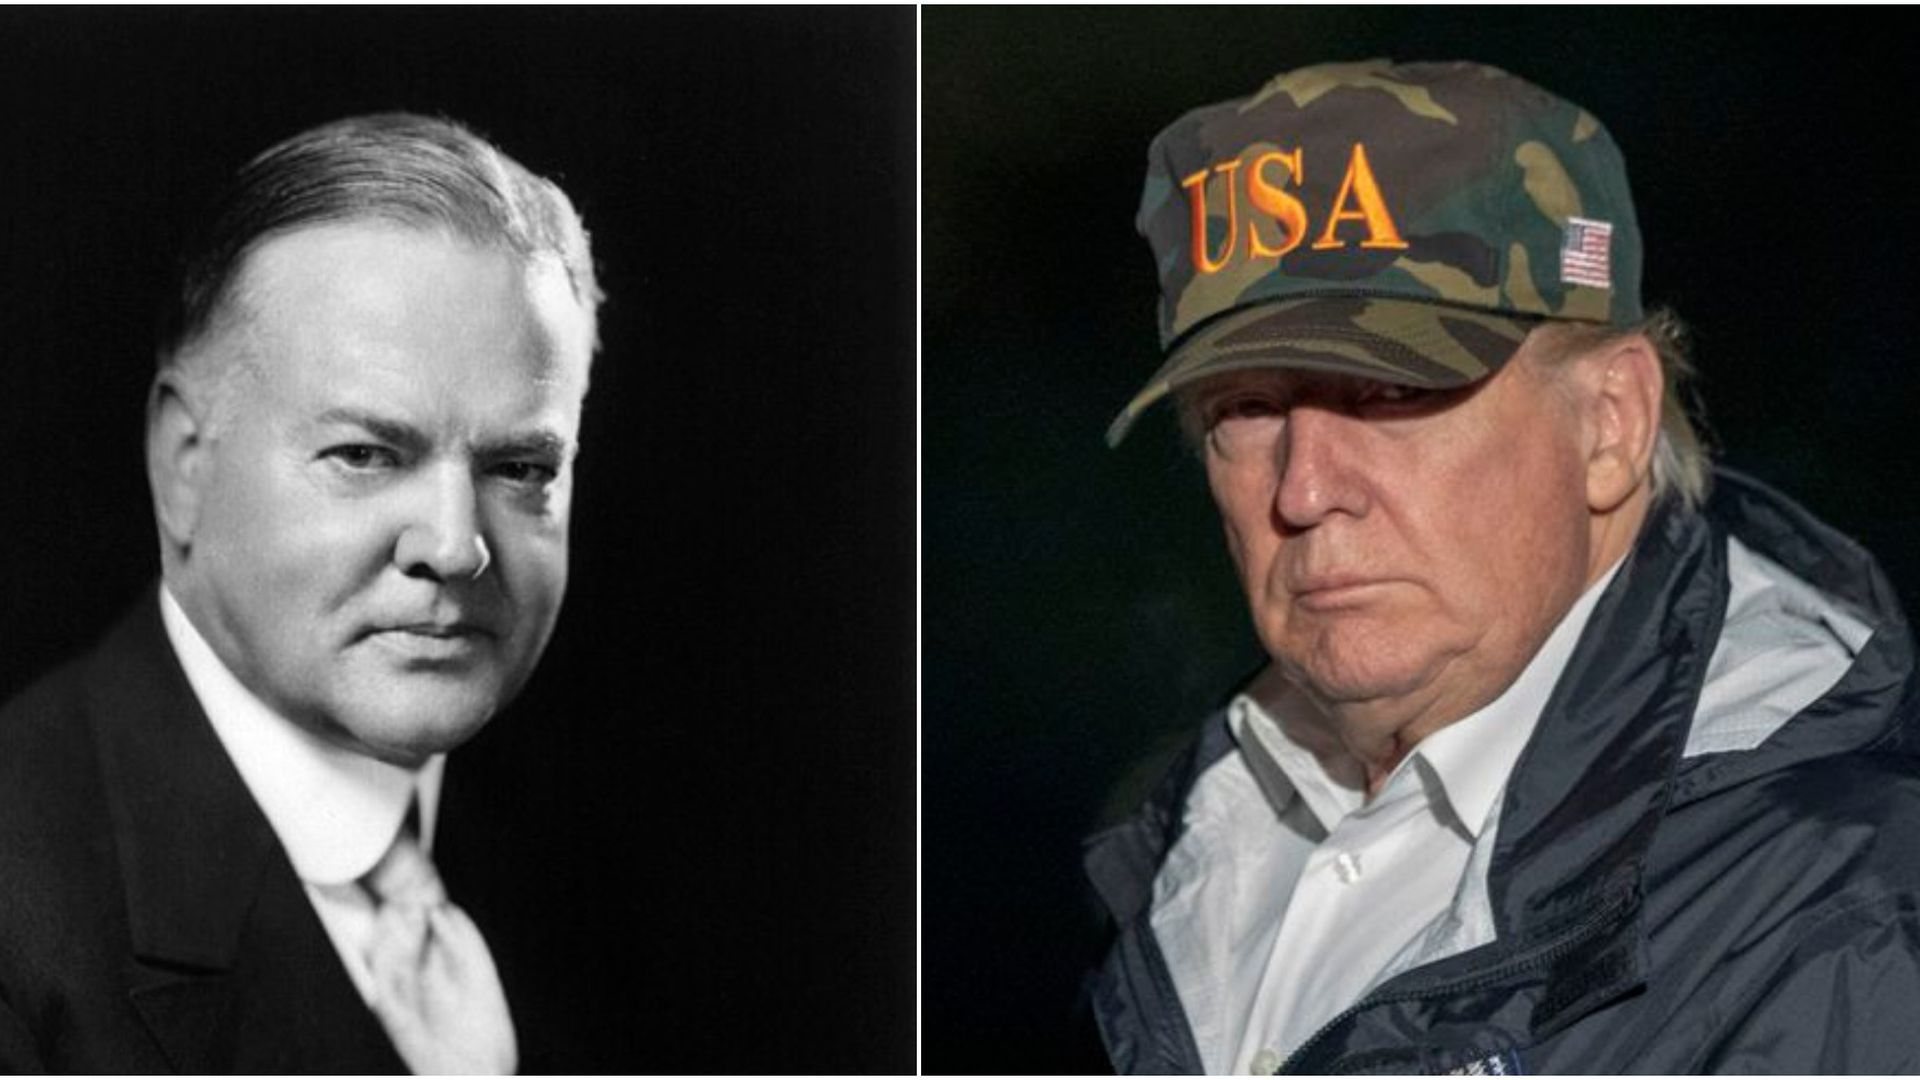 On the left, Herbert Hoover. On the right, Donald Trump